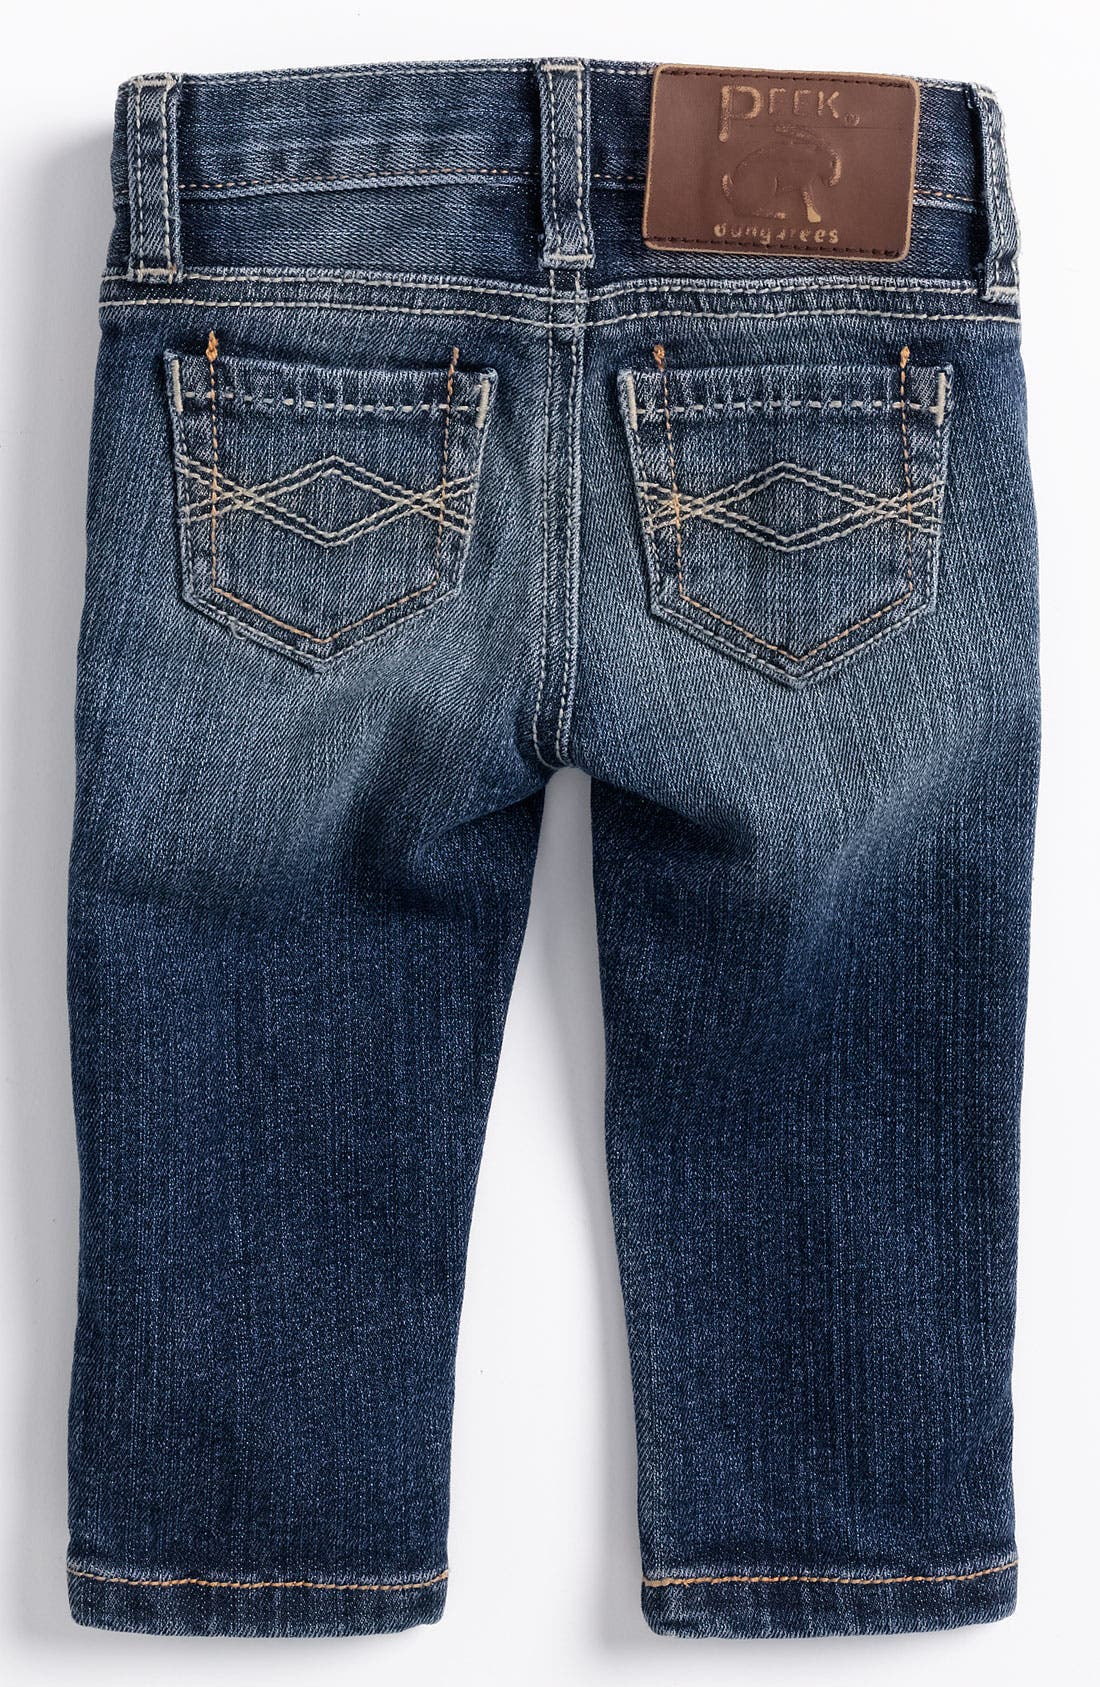 Alternate Image 1 Selected - Peek 'Maya' Skinny Jeans (Infant)